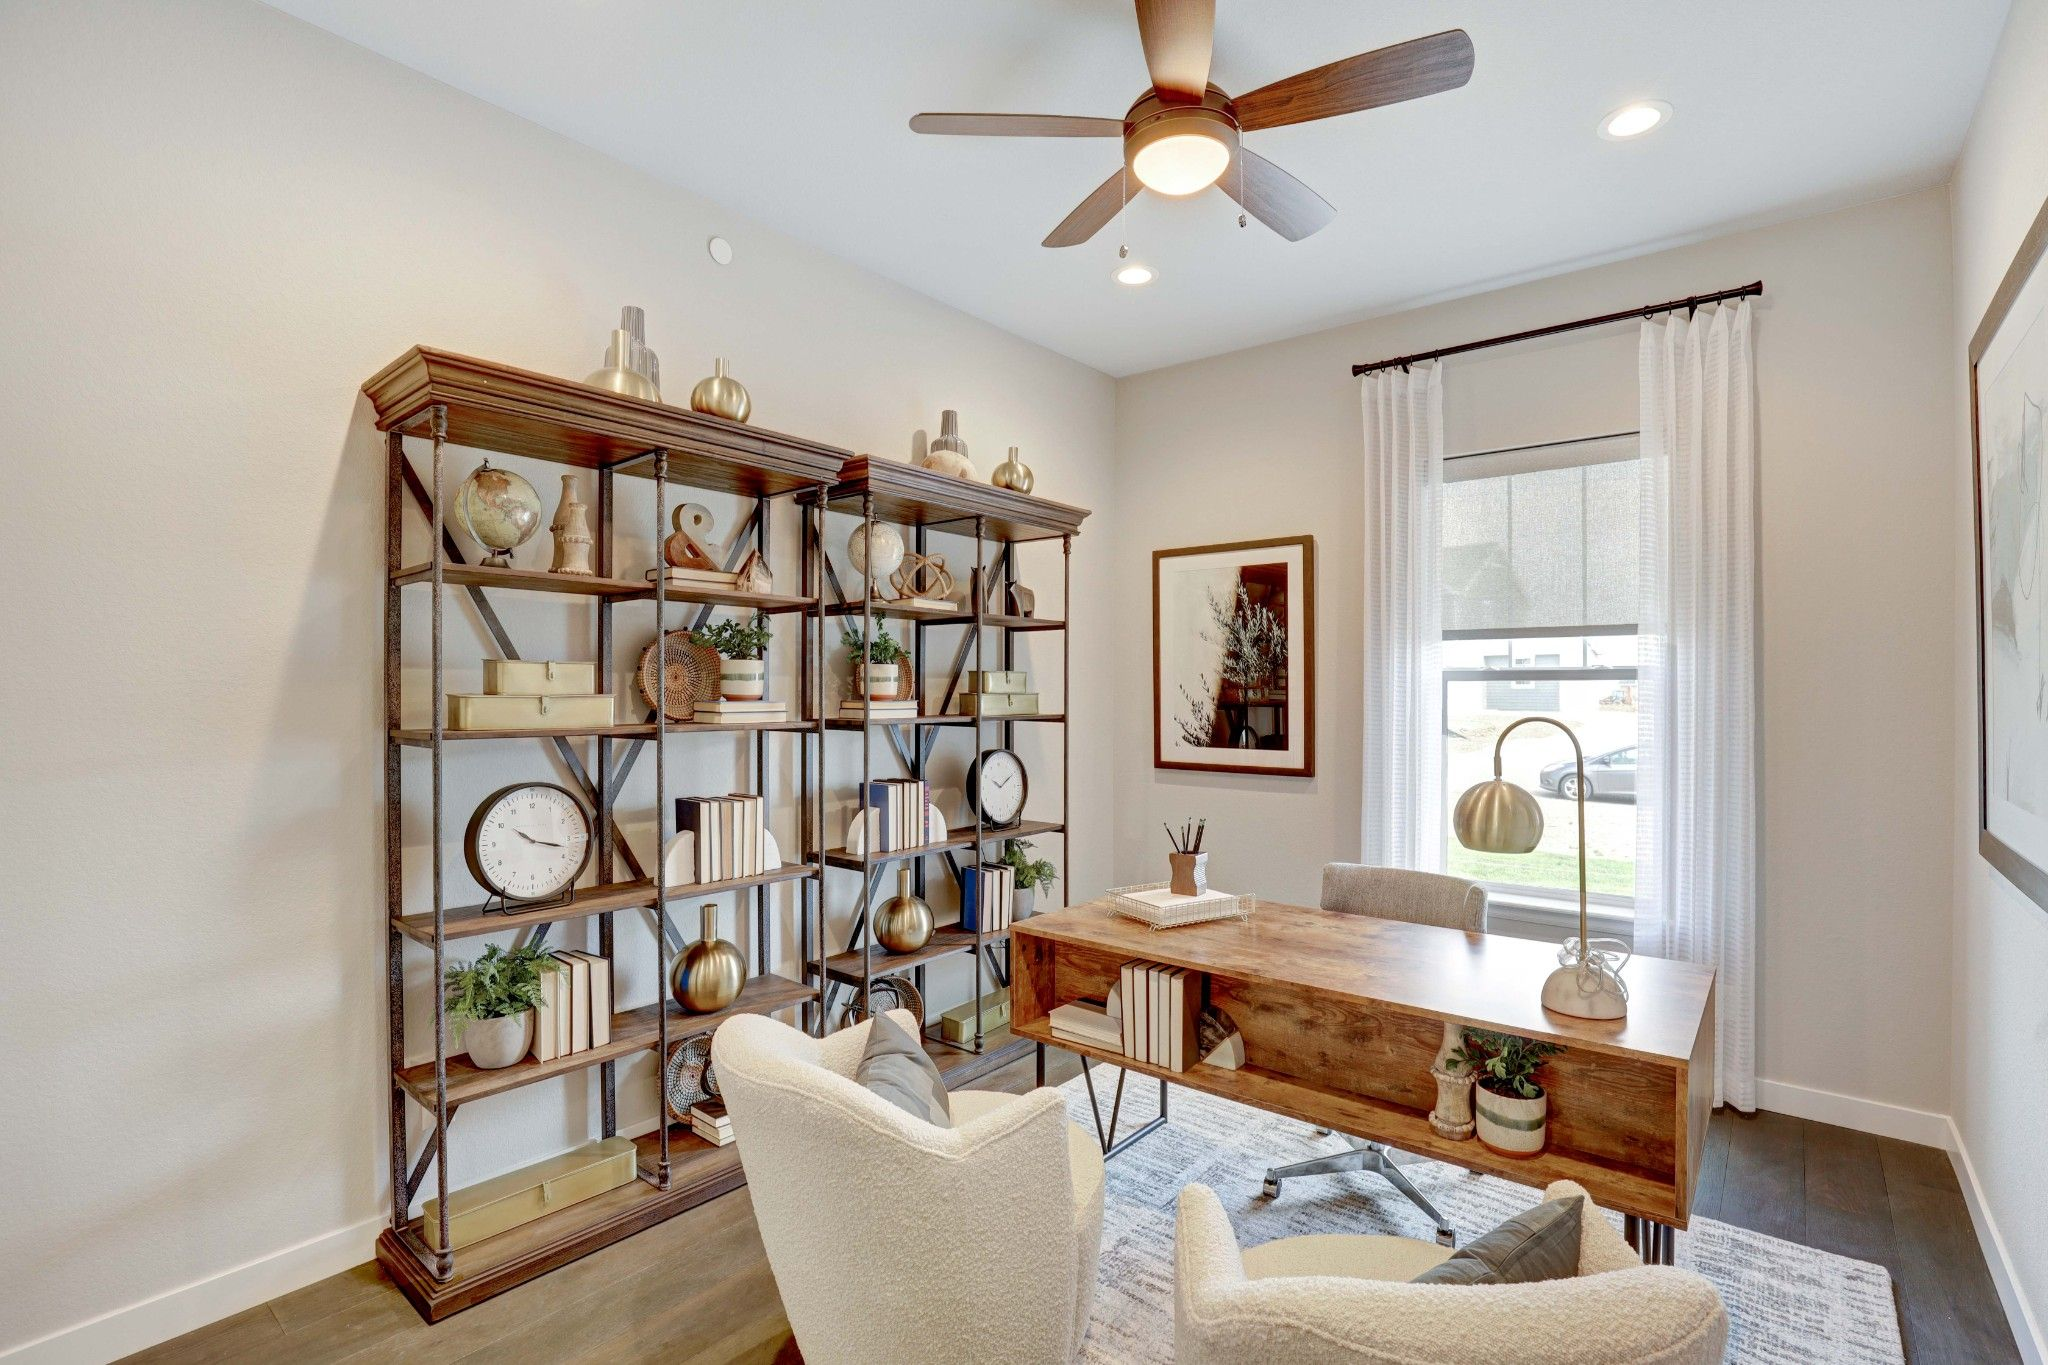 Living Area featured in the Penrose - Saddler Ridge By RichfieldHomes in Fort Collins-Loveland, CO